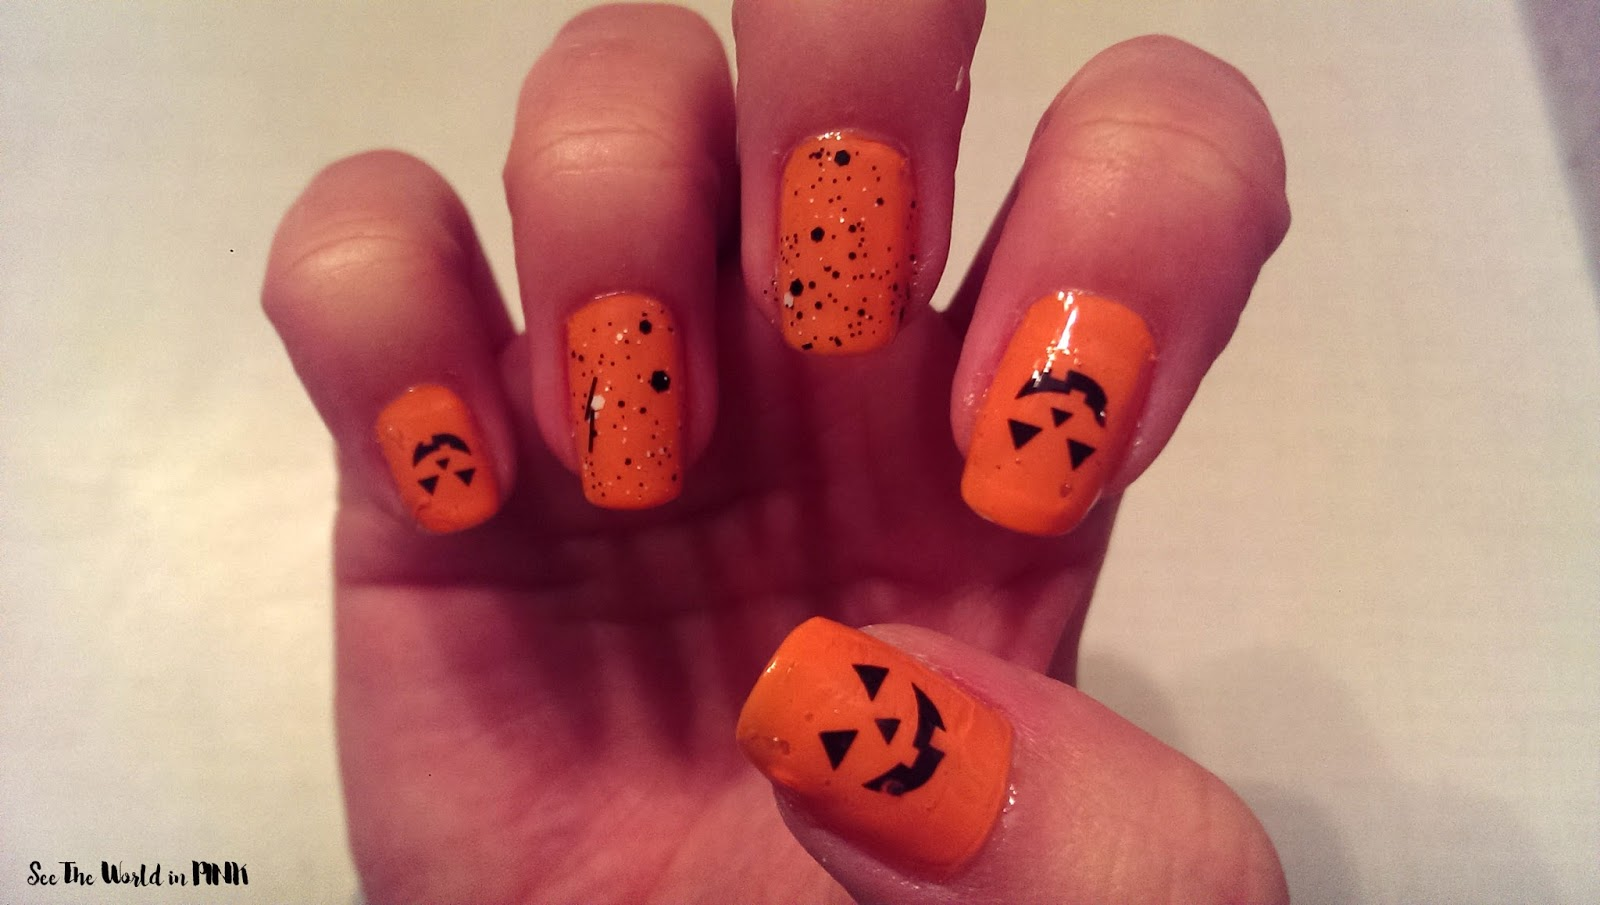 Manicure Monday - Jack-O-Lantern Nail feat. Nailed Kit decals | See ...